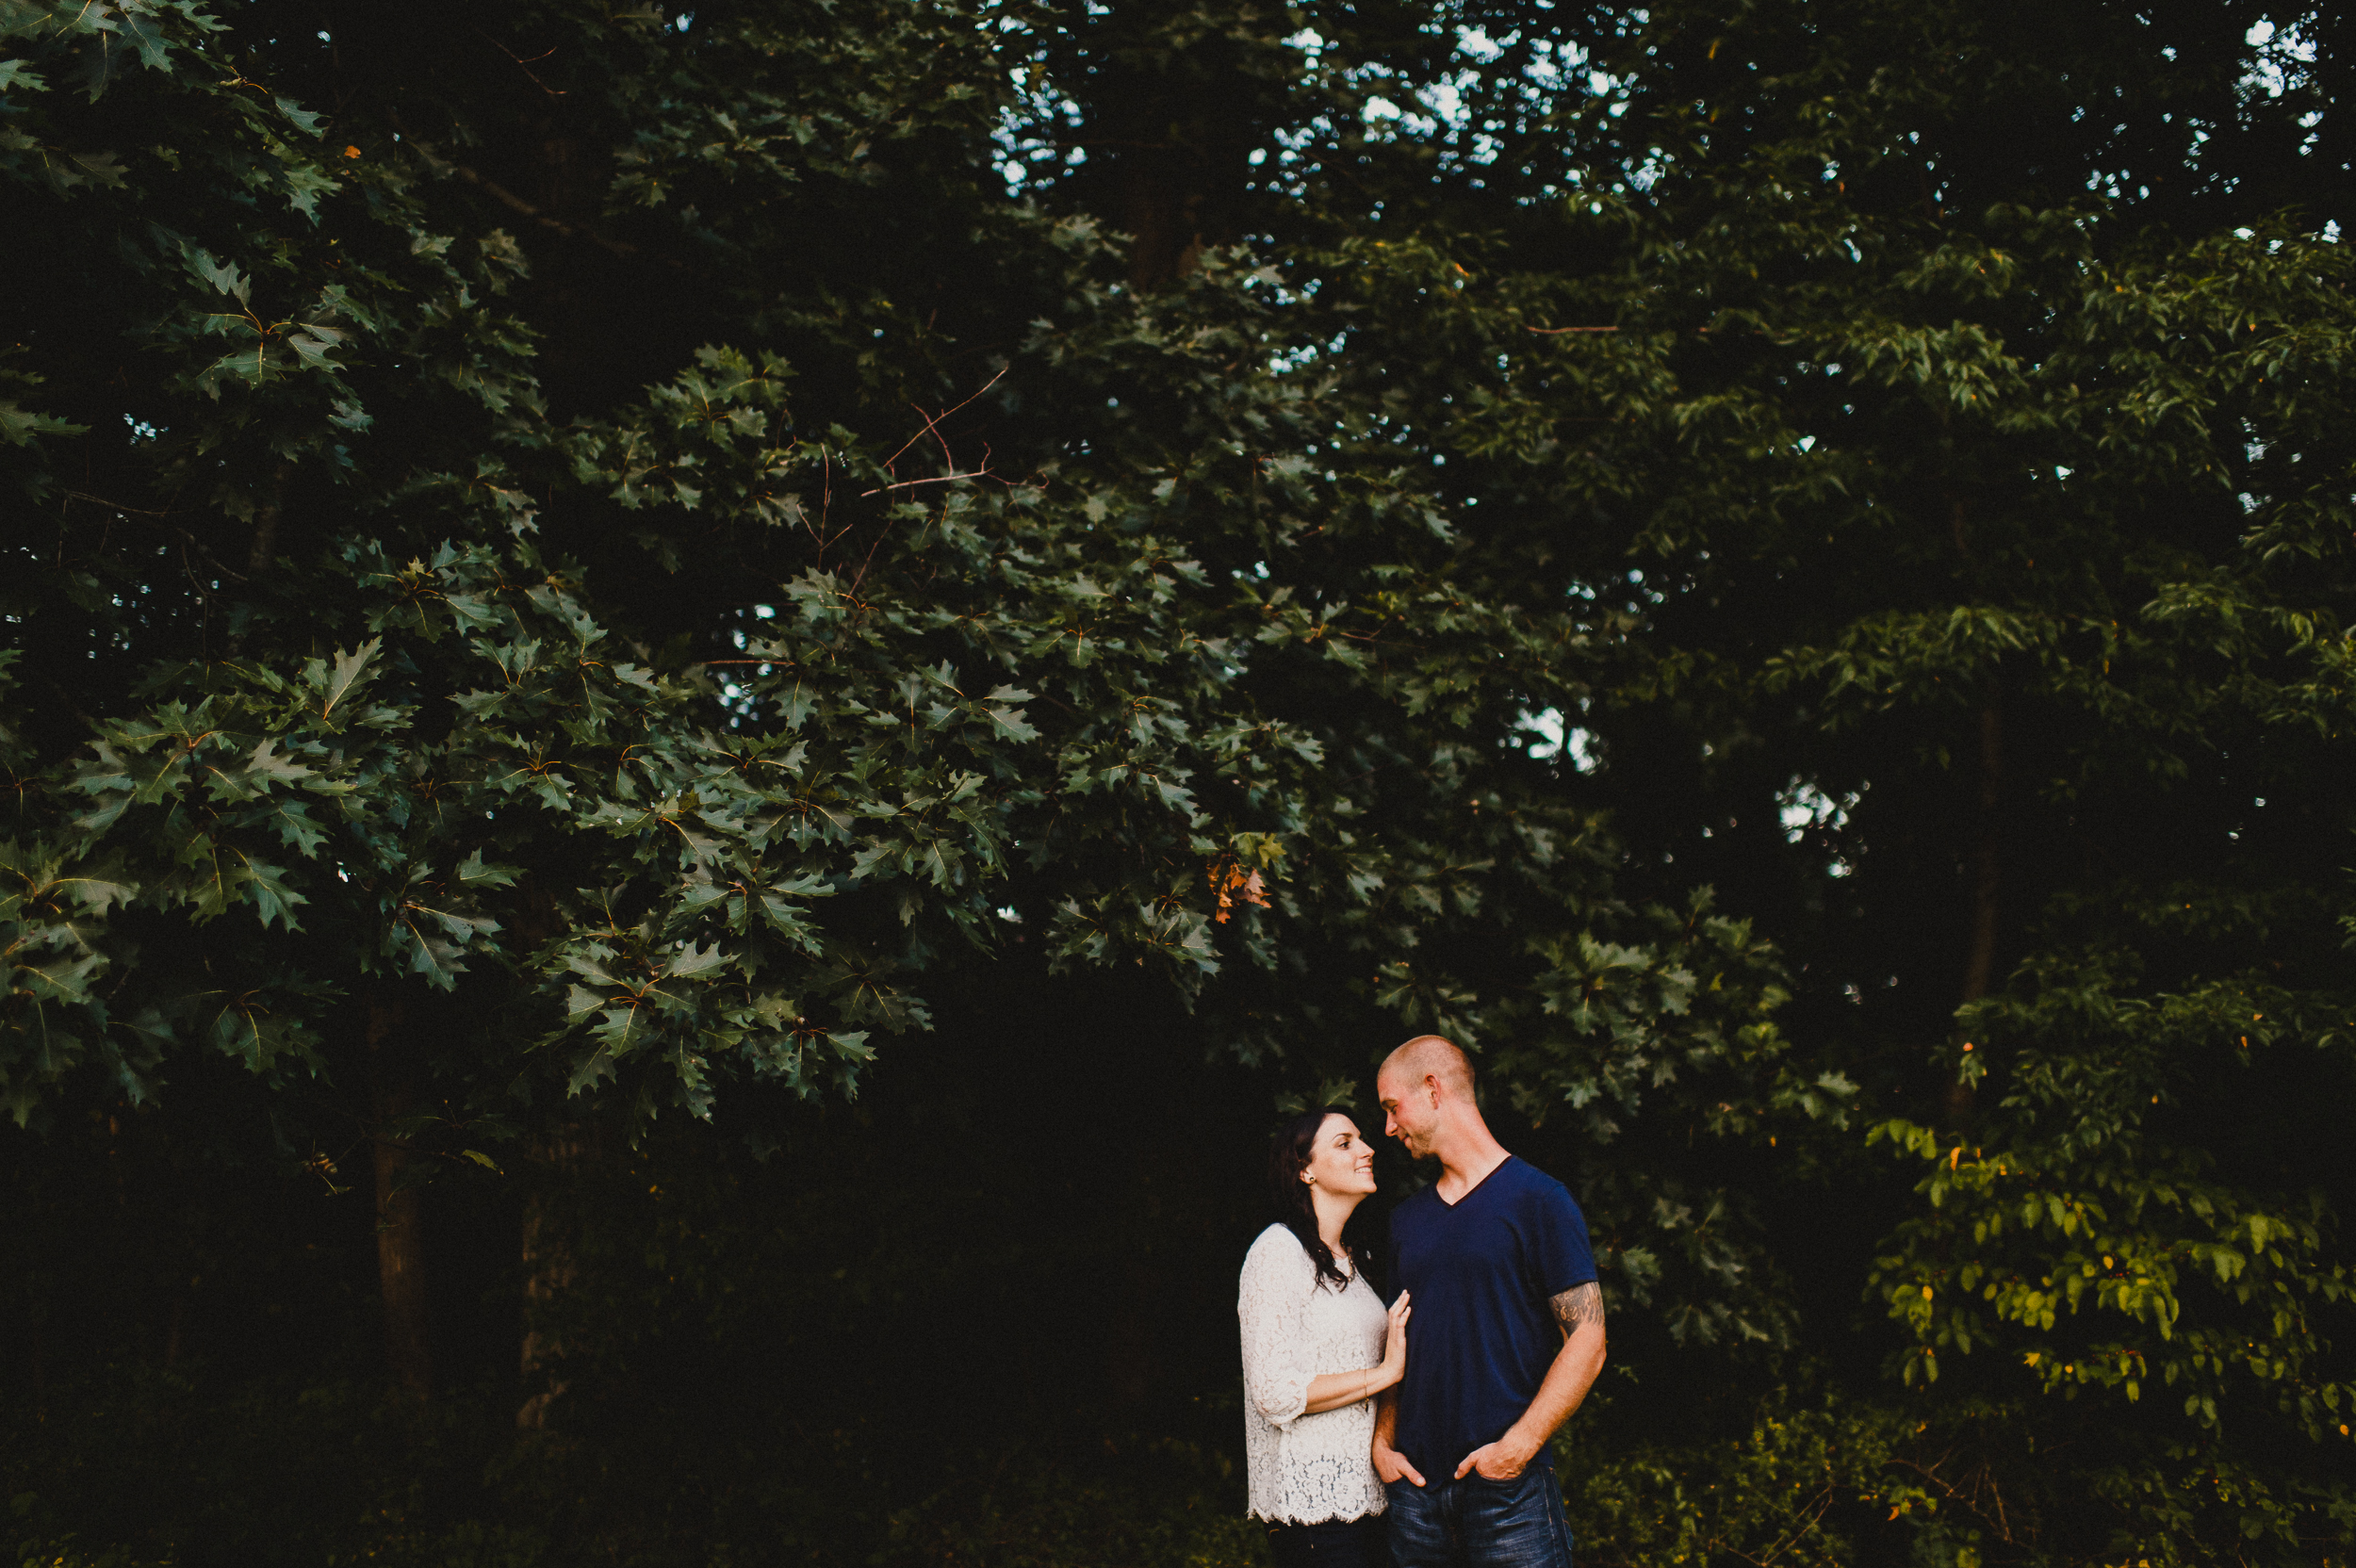 pat-robinson-photography-pa-engagement-session-20.jpg